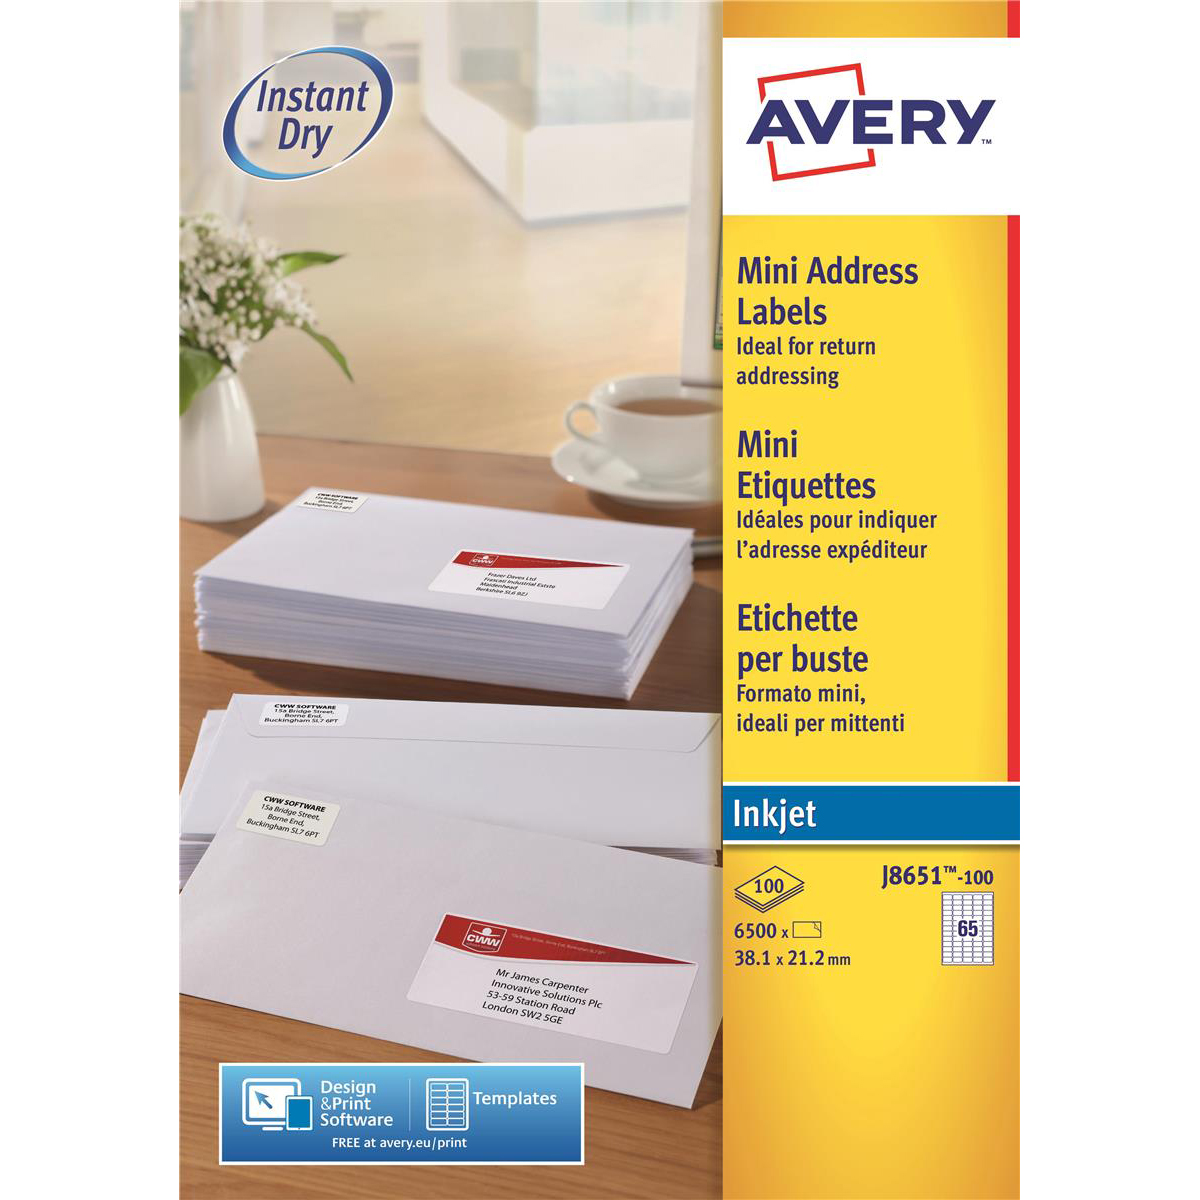 Avery Mini Address Labels Inkjet 65 per Sheet 38.1x21.2mm White Ref J8651-100 6500 Labels